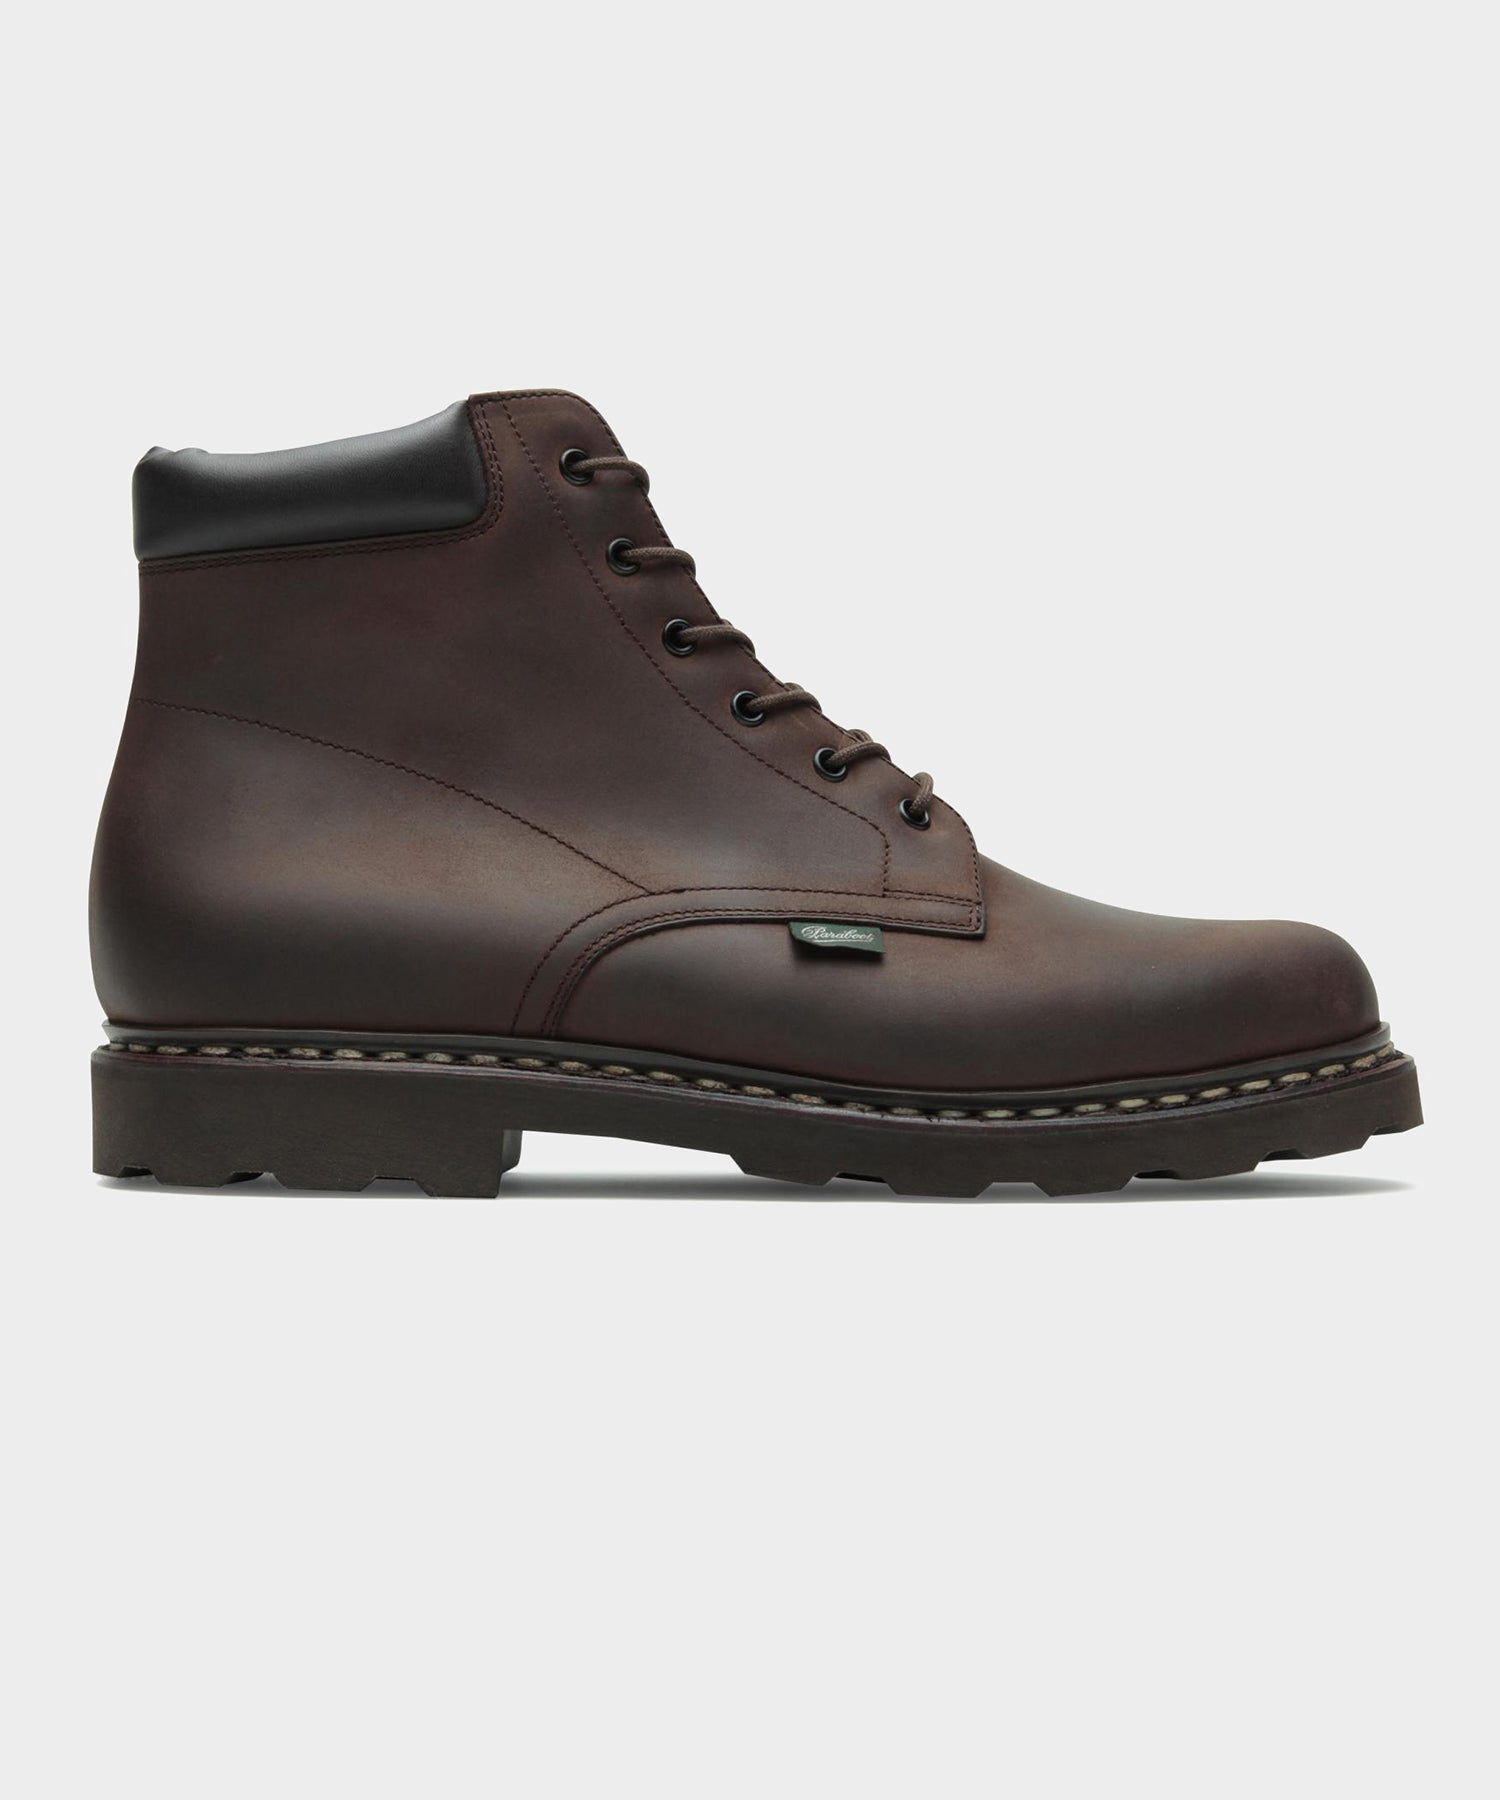 Paraboot Bergerac in Dark Brown